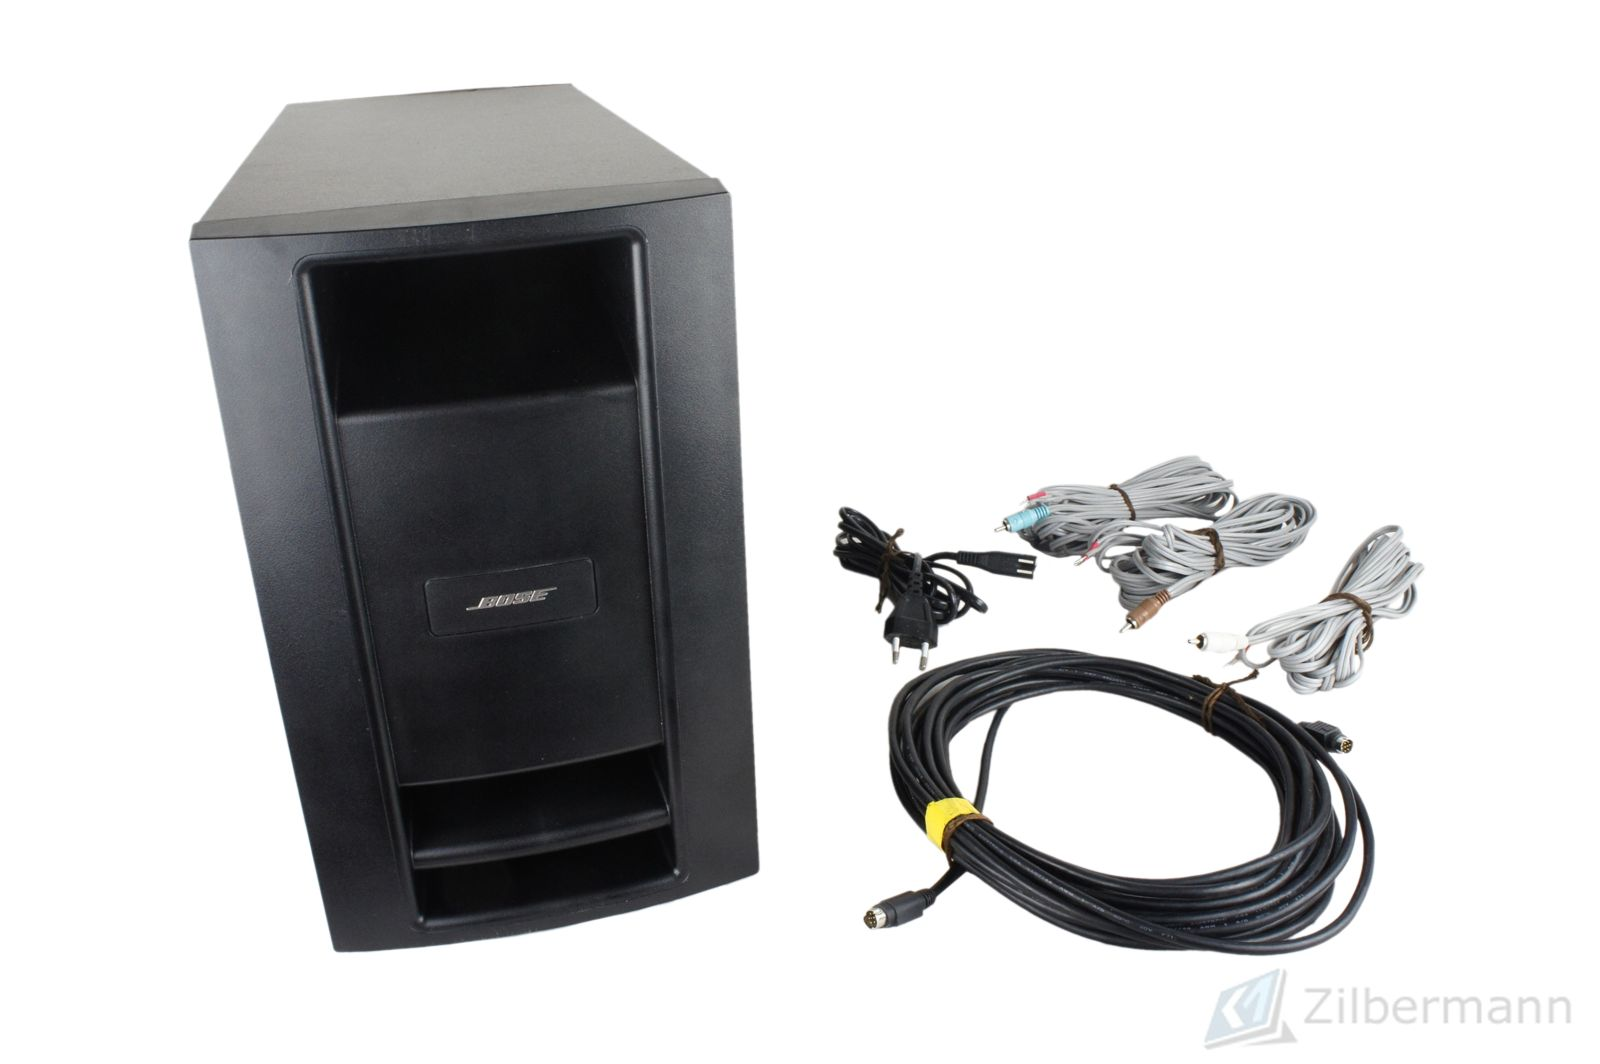 Bose_Lifestyle_18_Series_III_5.1_Subwoofer